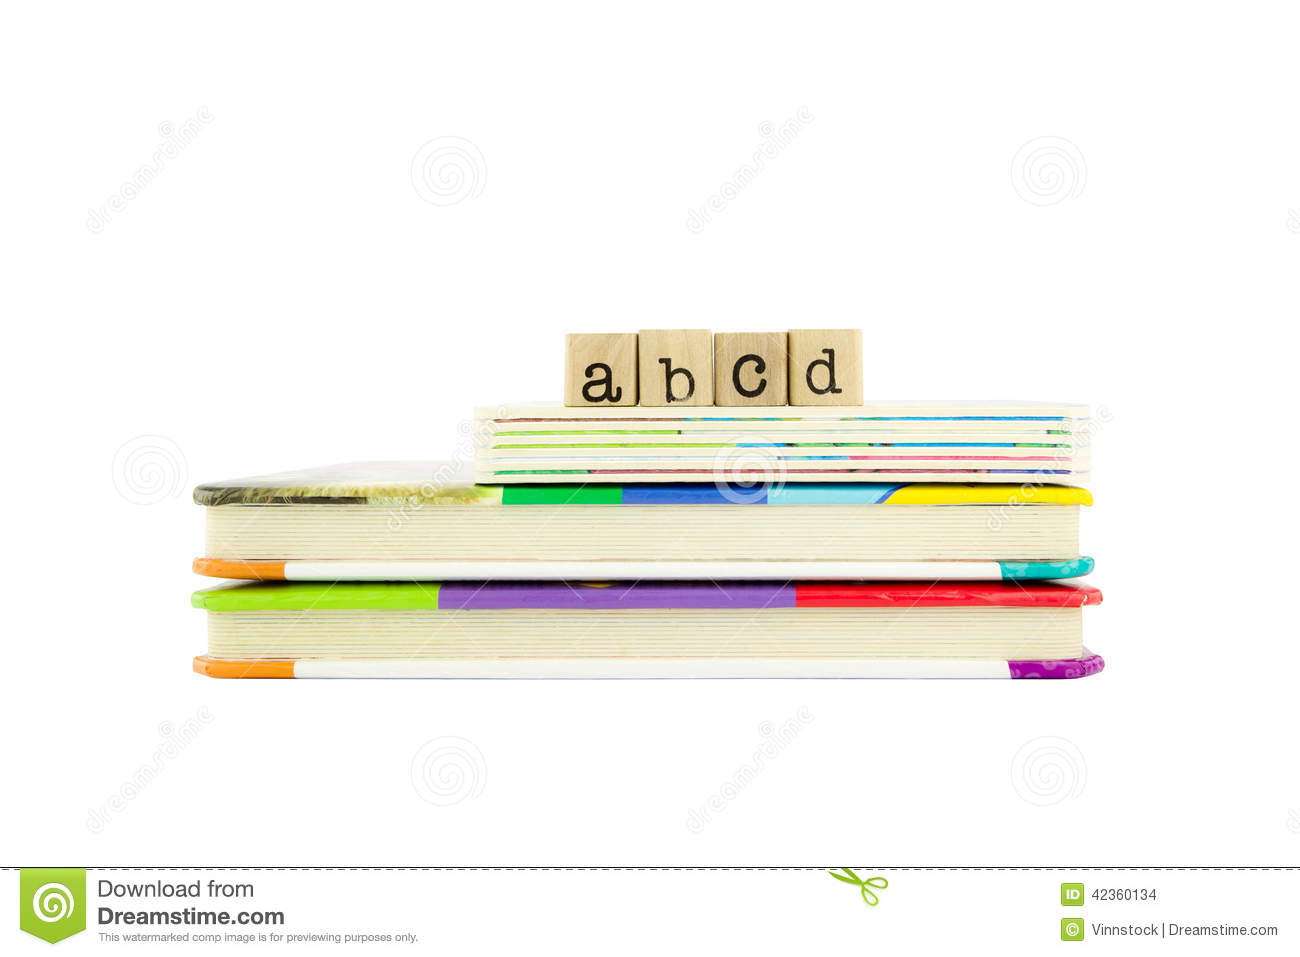 Abcd stock image image of script lettering fridge teacher 6969871 abcd word on wood stamps and childrens board books stock images thecheapjerseys Image collections